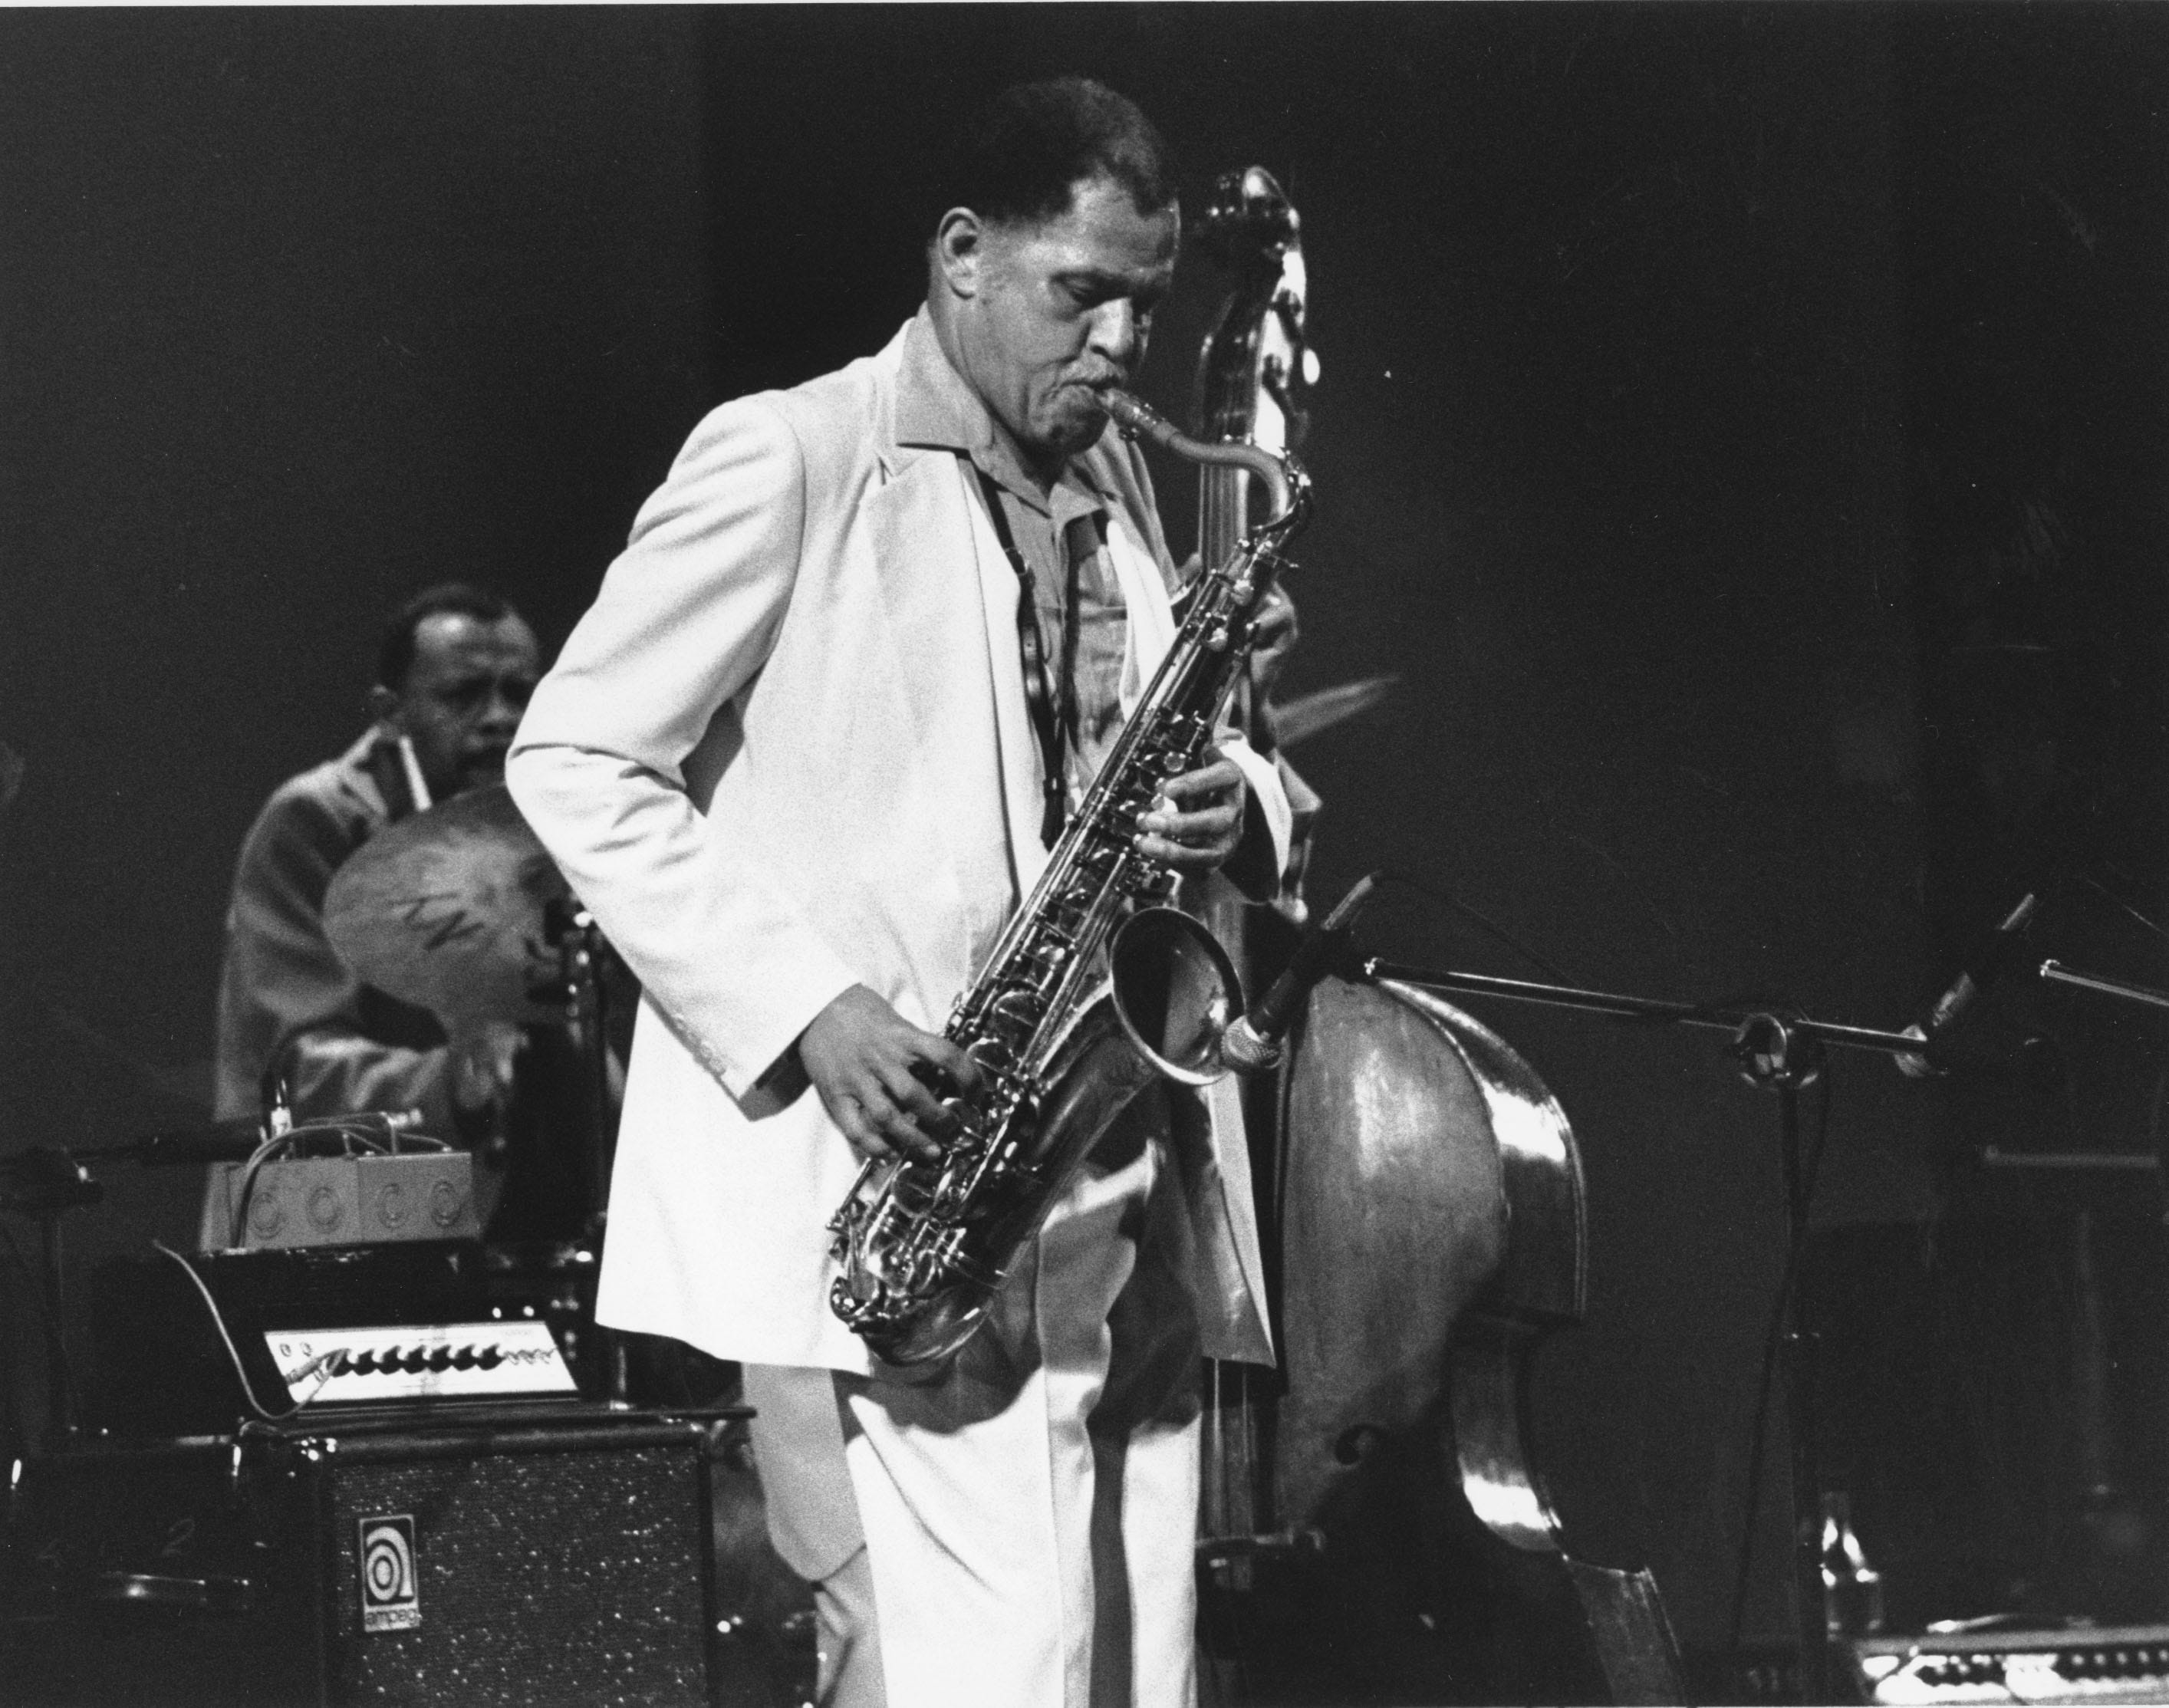 Dexter Gordon performs at the Charlie Parker tribute at Carnegie Hall in New York City on June 28, 1980.